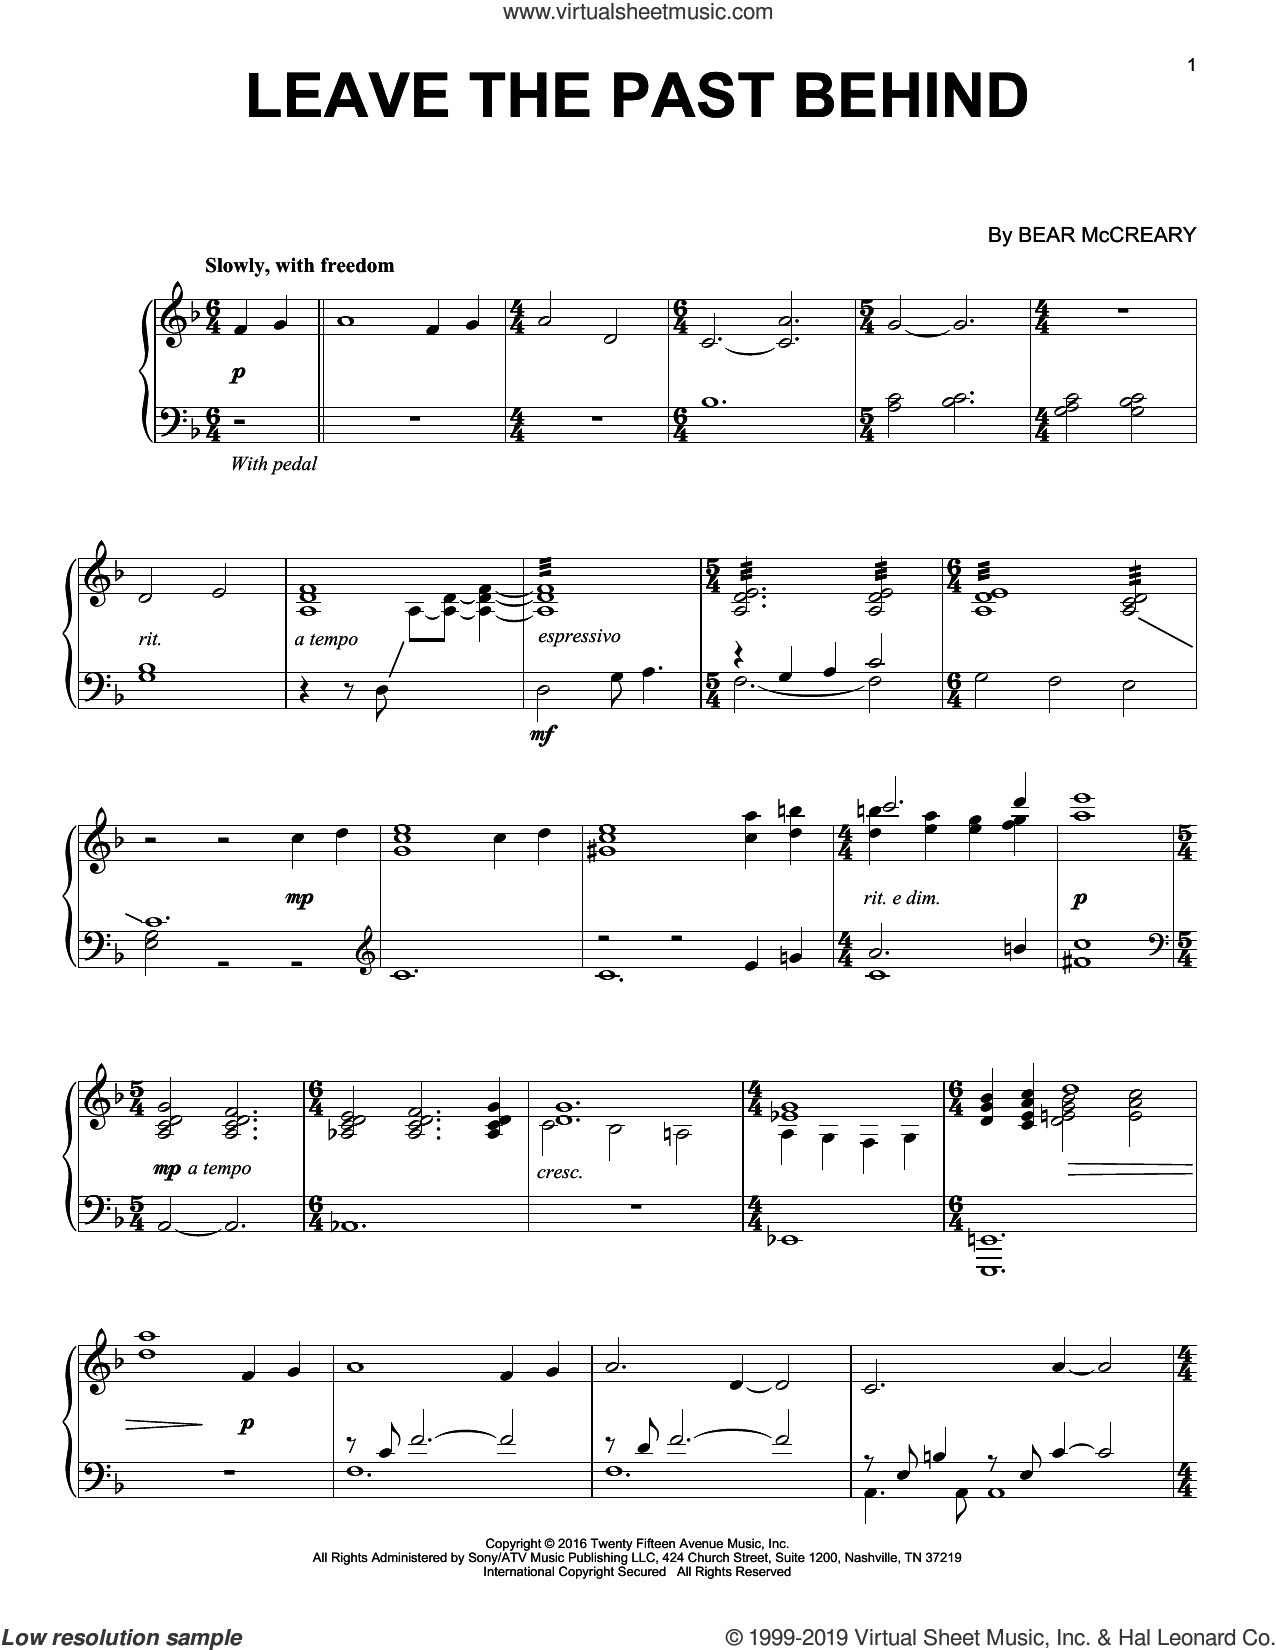 Leave The Past Behind (from Outlander) sheet music for piano solo by Bear McCreary, intermediate skill level